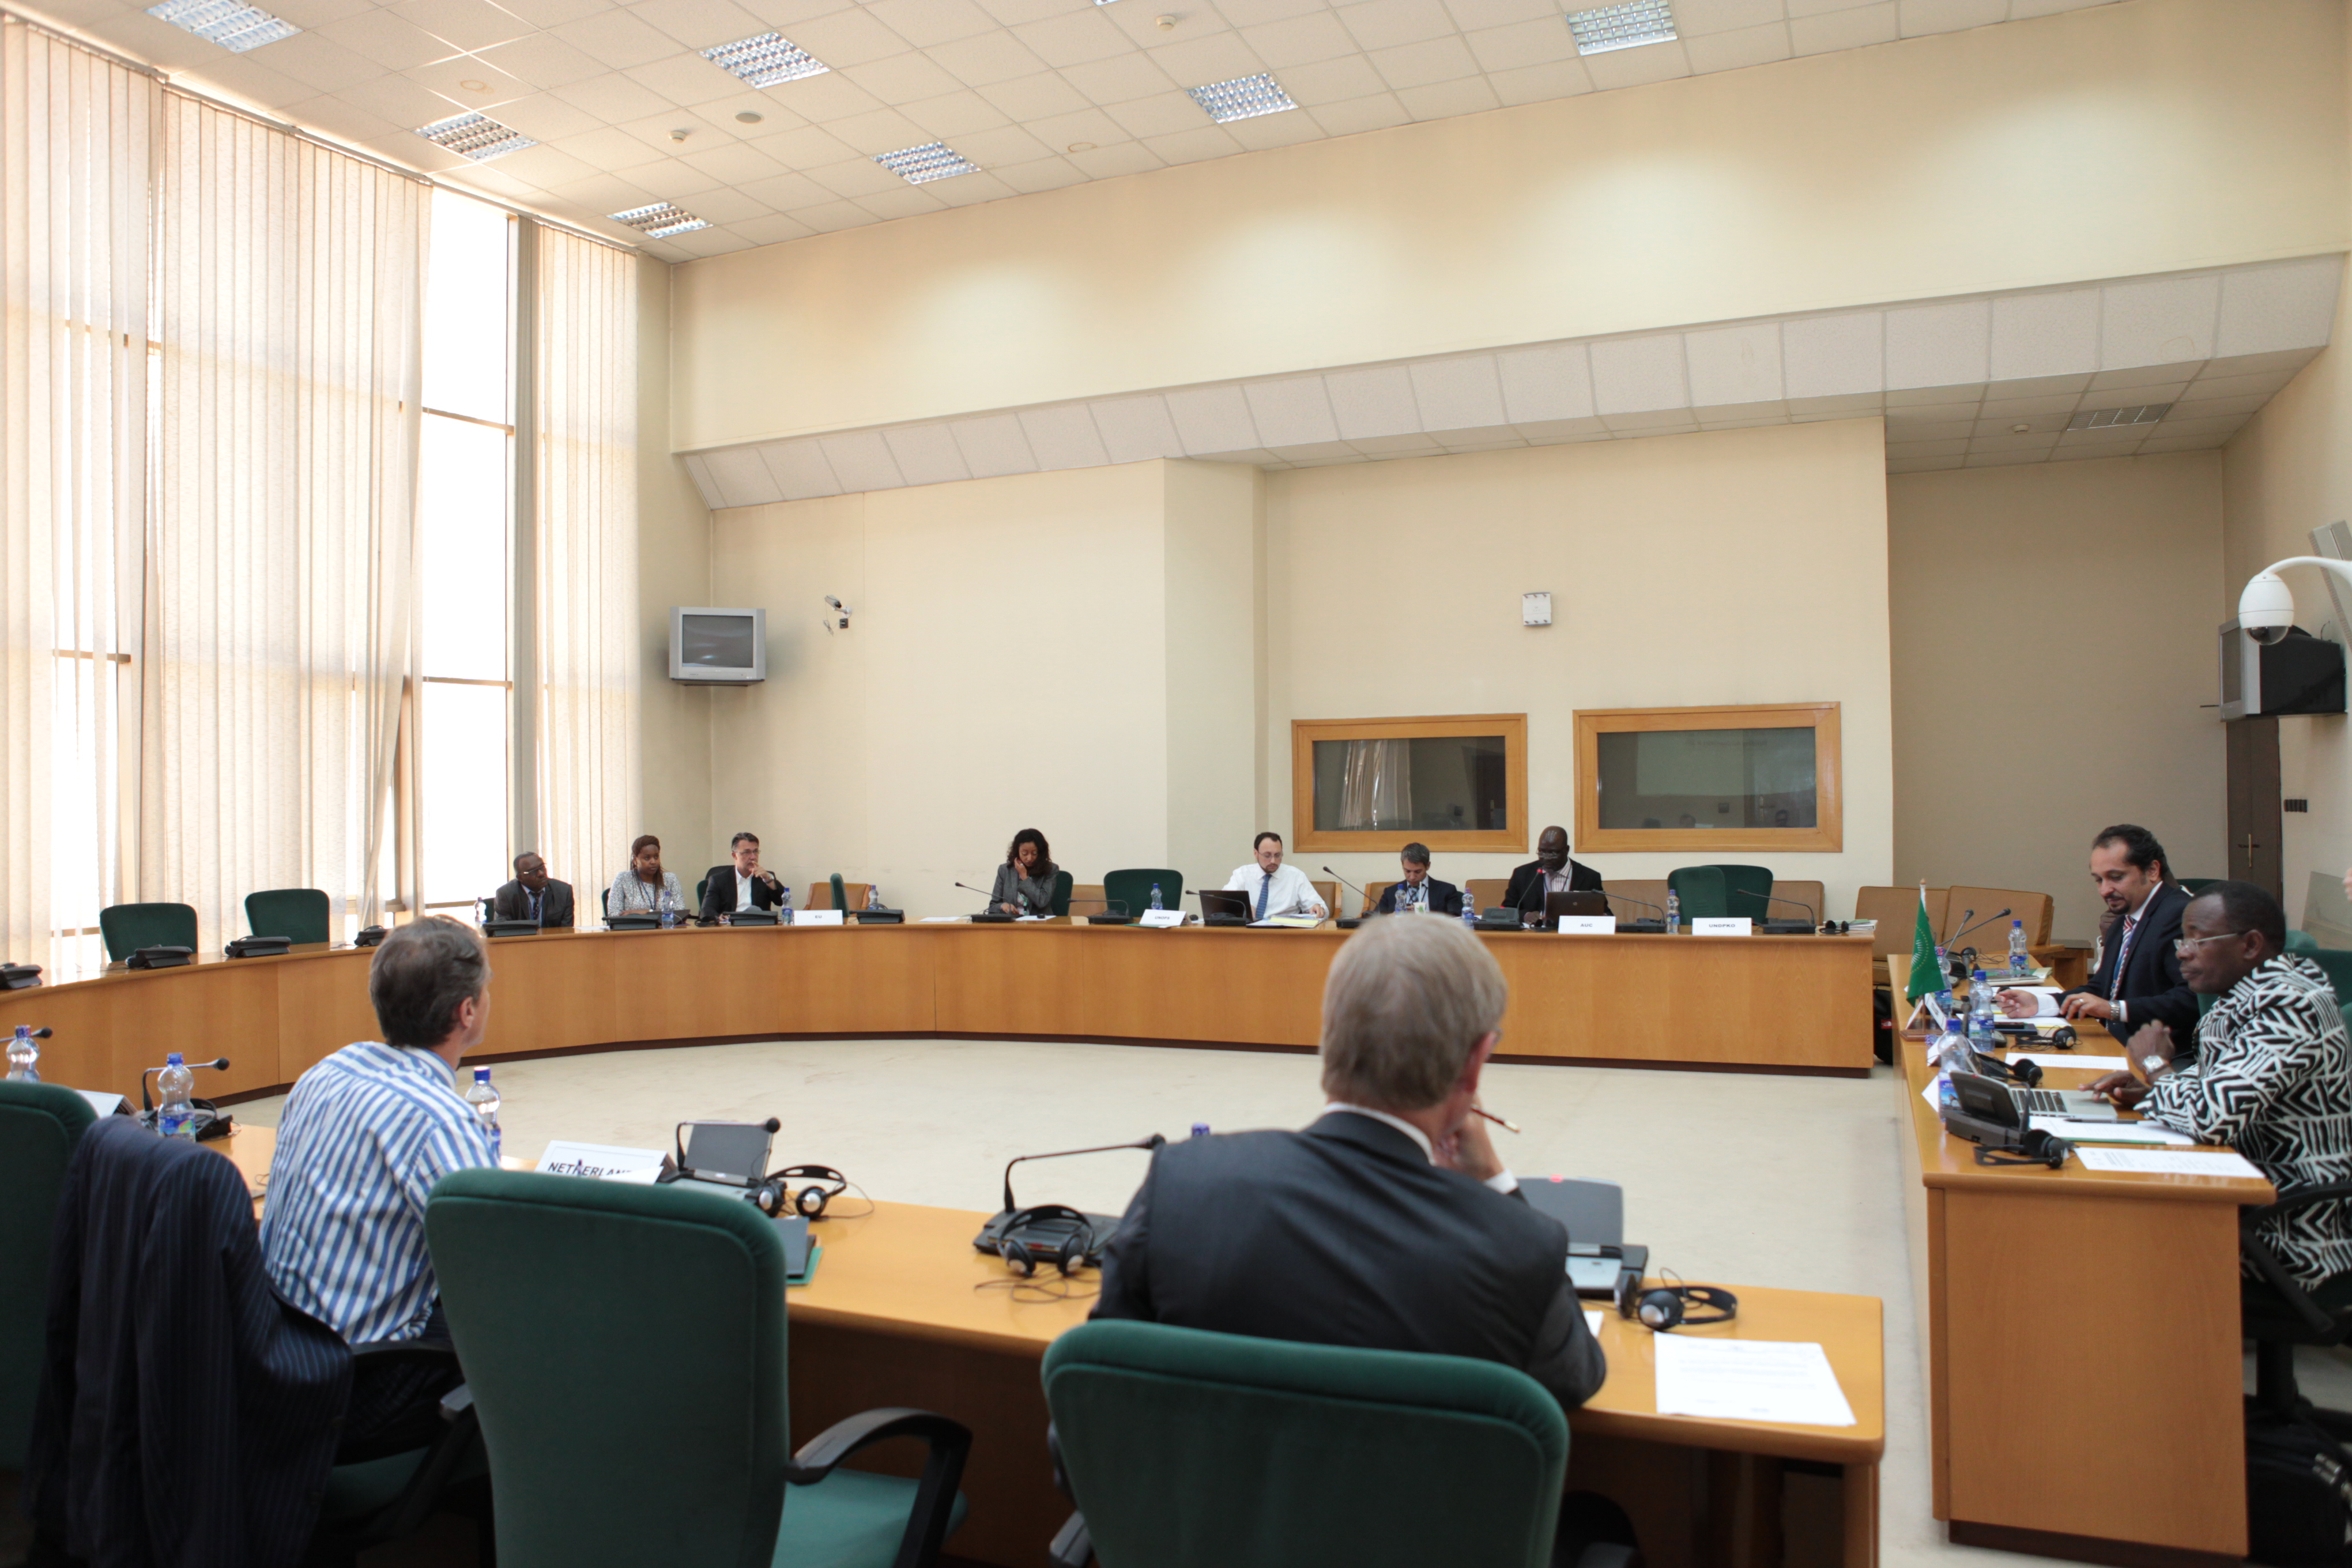 AUC hosts the 2nd Steering Committee Meeting to strengthen the AU Capacity for Security Sector Reform (SSR)